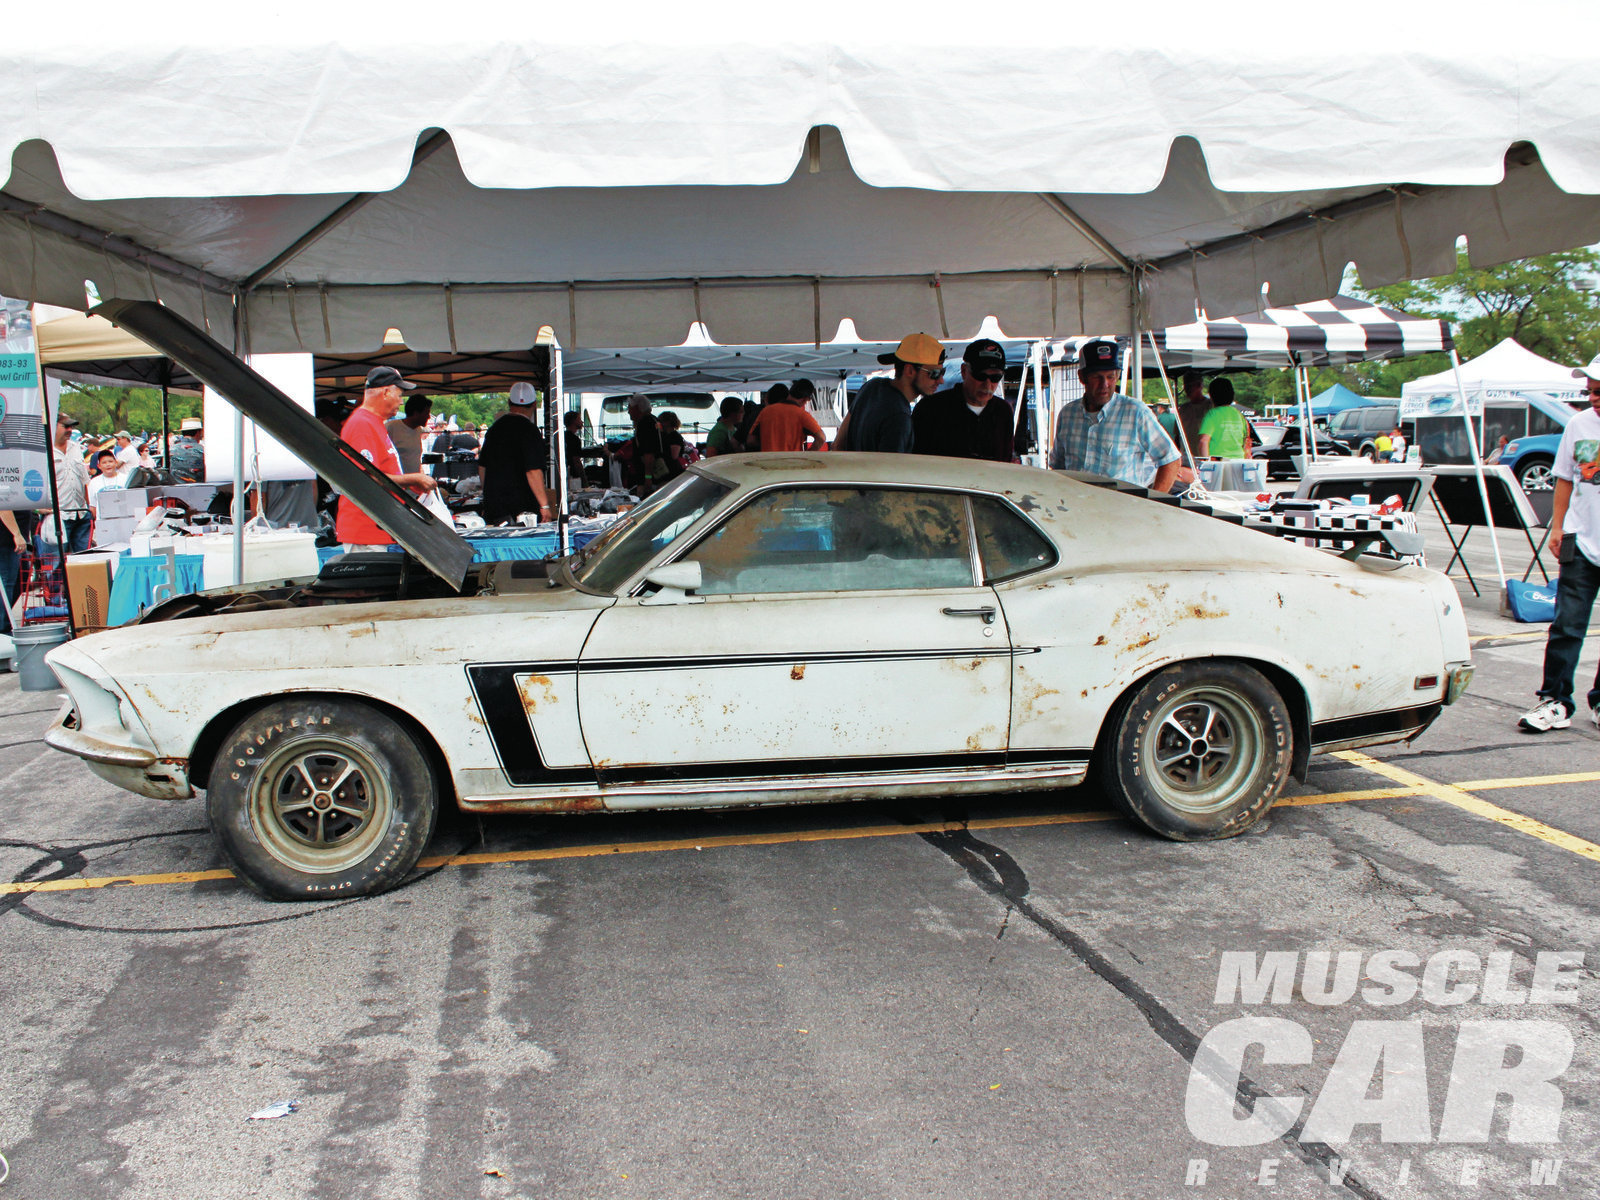 """The Mustang Memories All-Ford Car Show is held adjacent to Ford's world headquarters building in Dearborn. John Grafelman displayed the Shinoda prototype Boss 302 at the show, still in its as-stored condition (""""Long-Lost Boss,"""" June '11). He plans to restore the car in time for the Mustang's 50th anniversary. """"Larry would have wanted it that way,"""" he told us."""